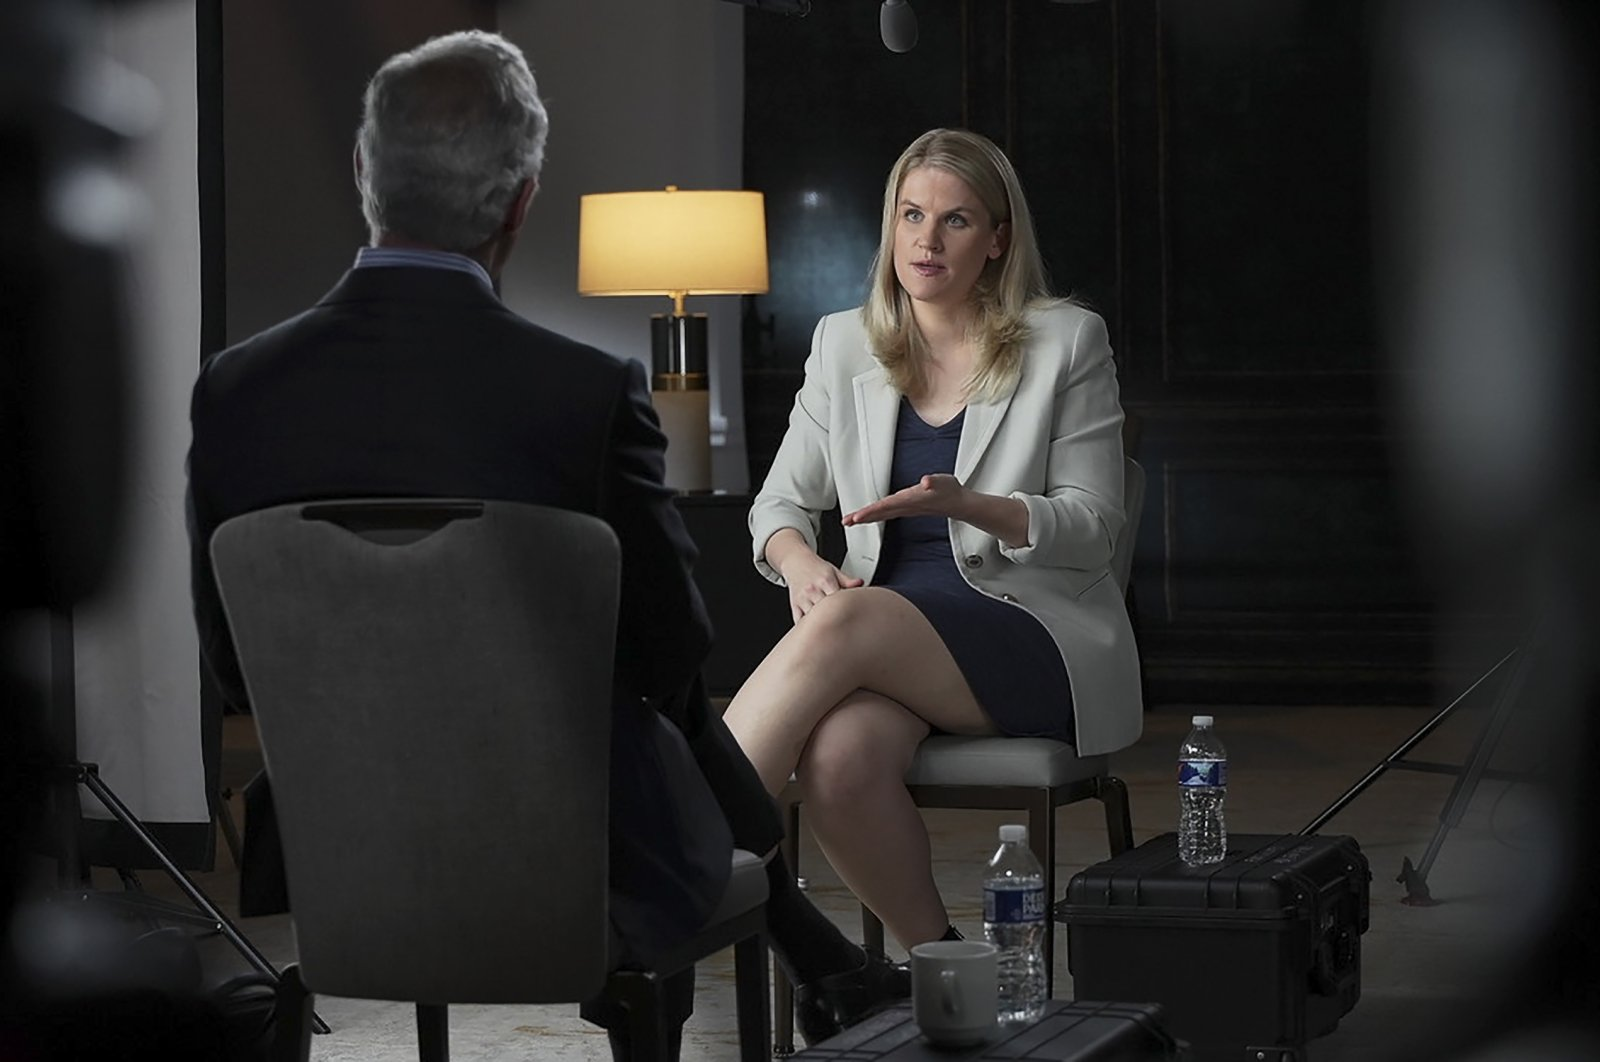 """In this Sept. 16, 2021, photo provided by CBS, Facebook whistleblower Frances Haugen talks with CBS' Scott Pelley on """"60 Minutes,"""" in an episode that aired on Oct. 3, 2021. (CBS News/60 Minutes via AP)"""